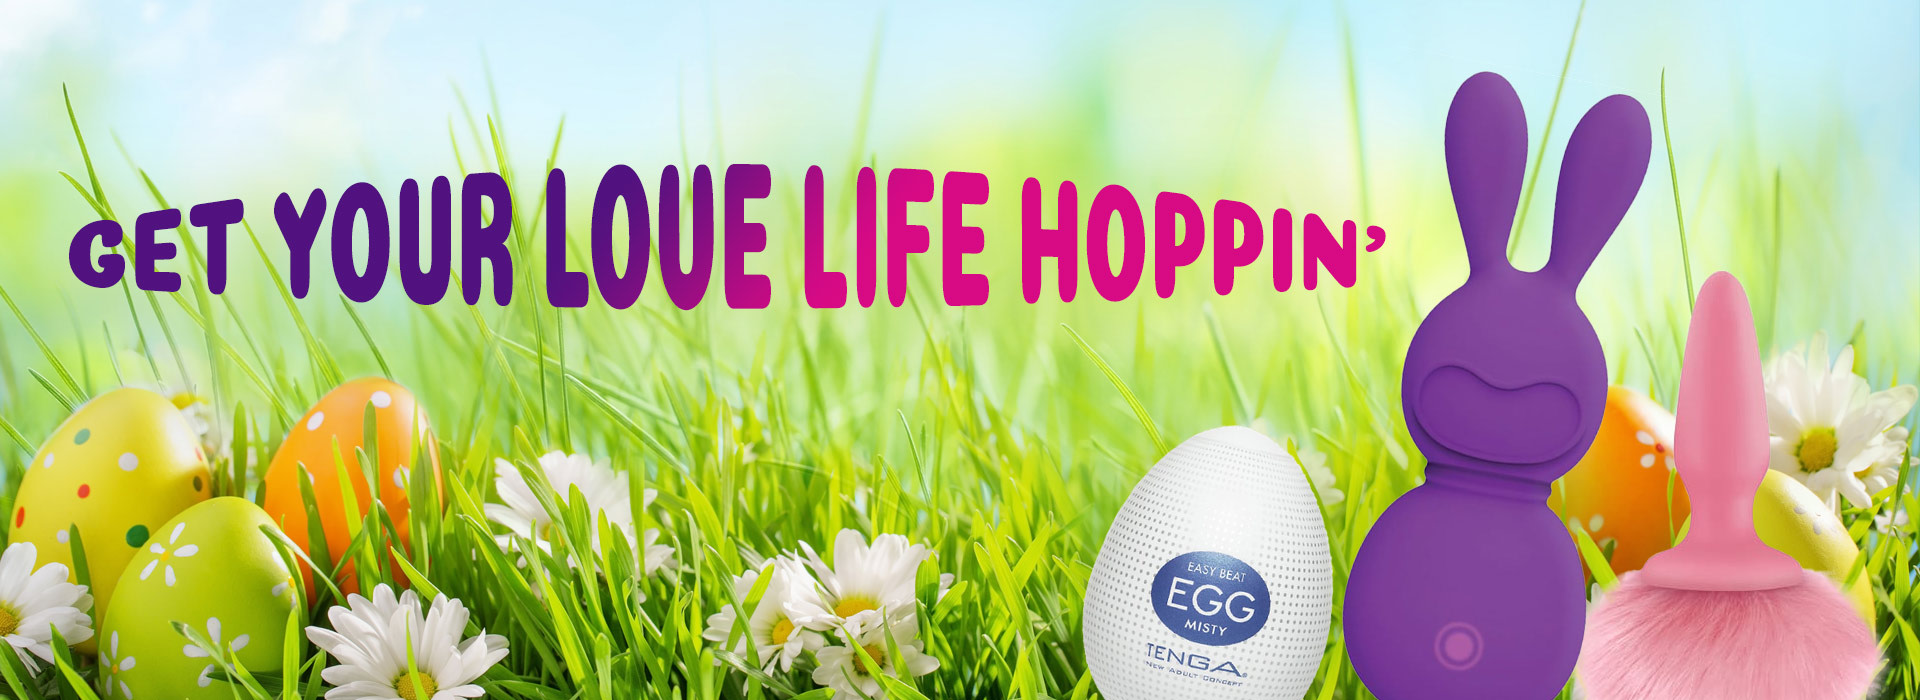 Get Your Love Life Hopping with these Eggs and Rabbits